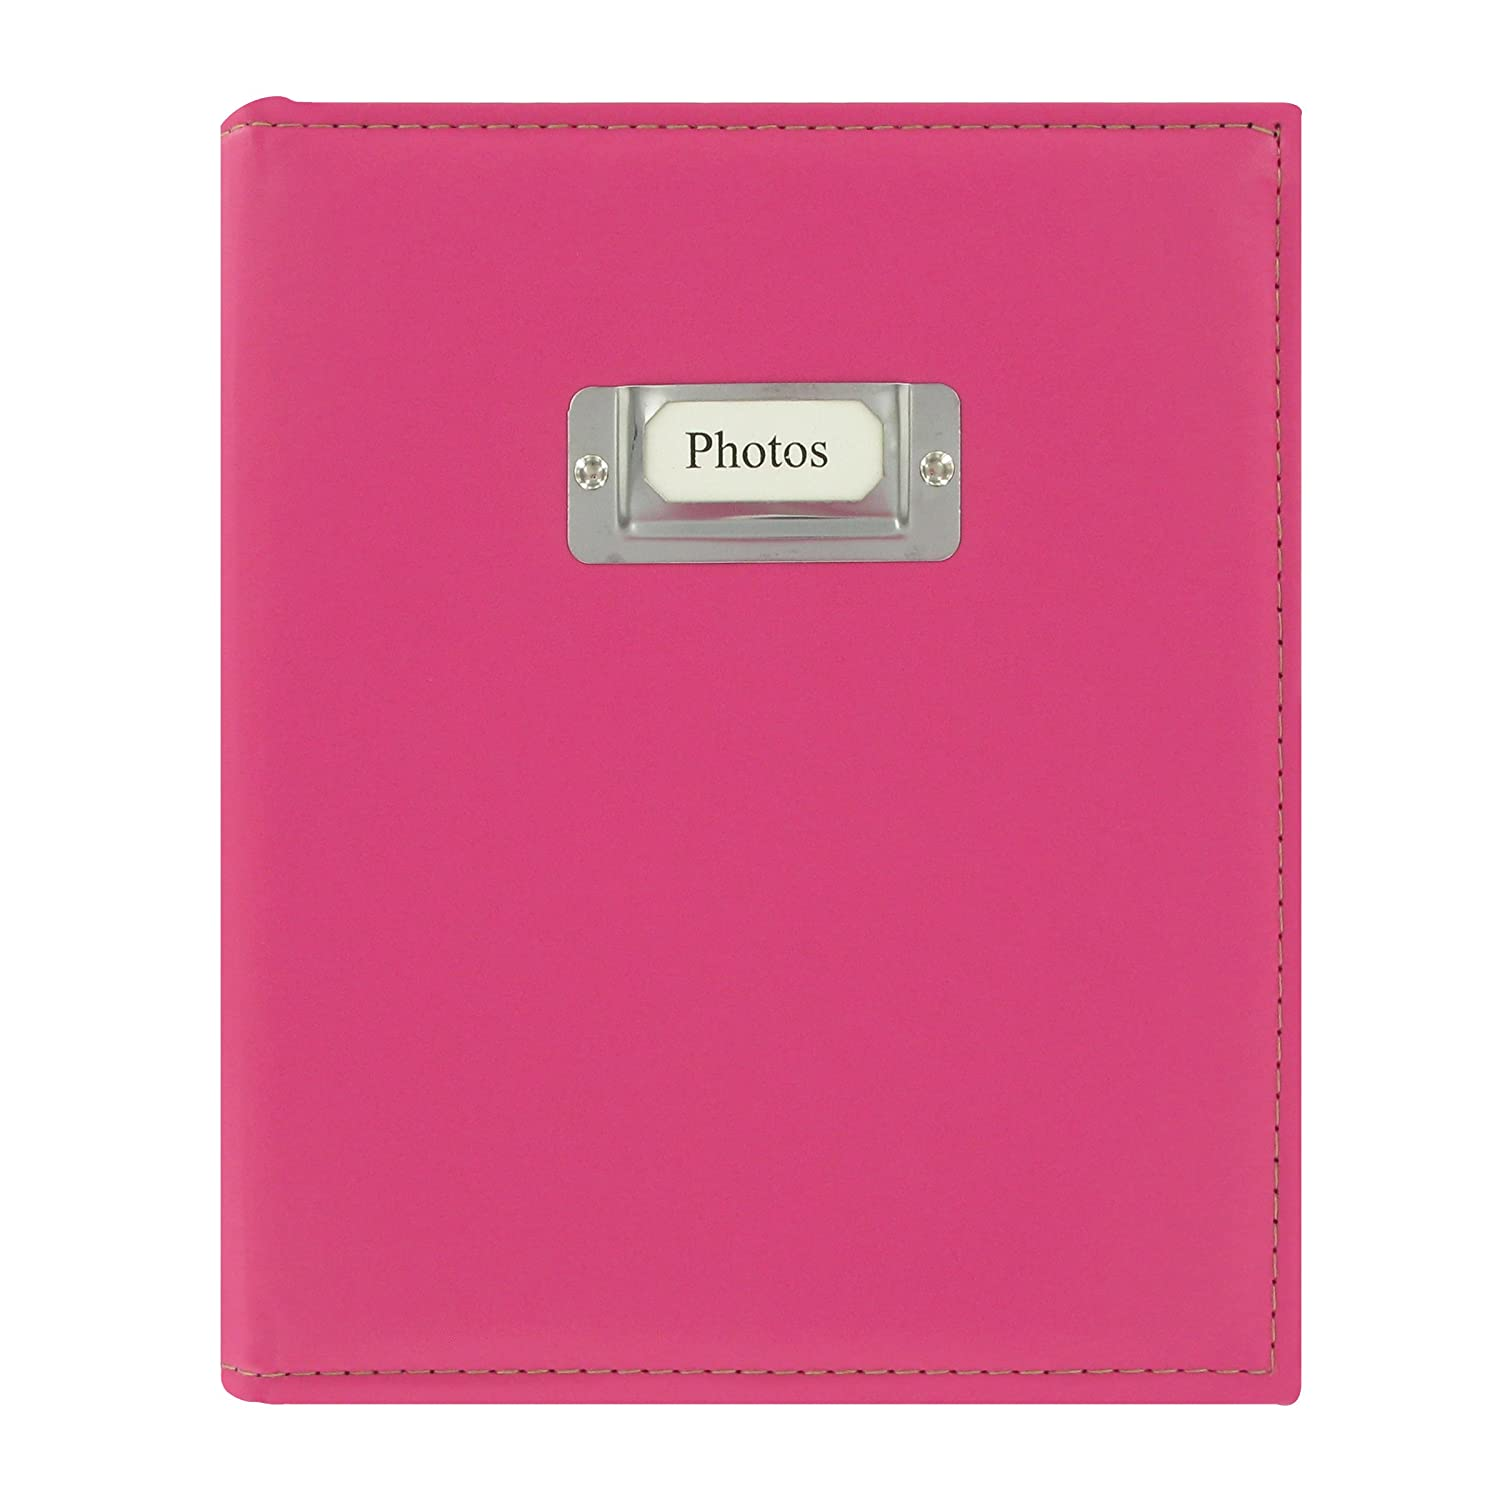 Pioneer Photo 208-Pocket Bright Pink Sewn Leatherette Photo Album with Silvertone Metal I.D. Plate for 4 by 6-Inch Prints Pioneer Photo Albums CTS-246/PK